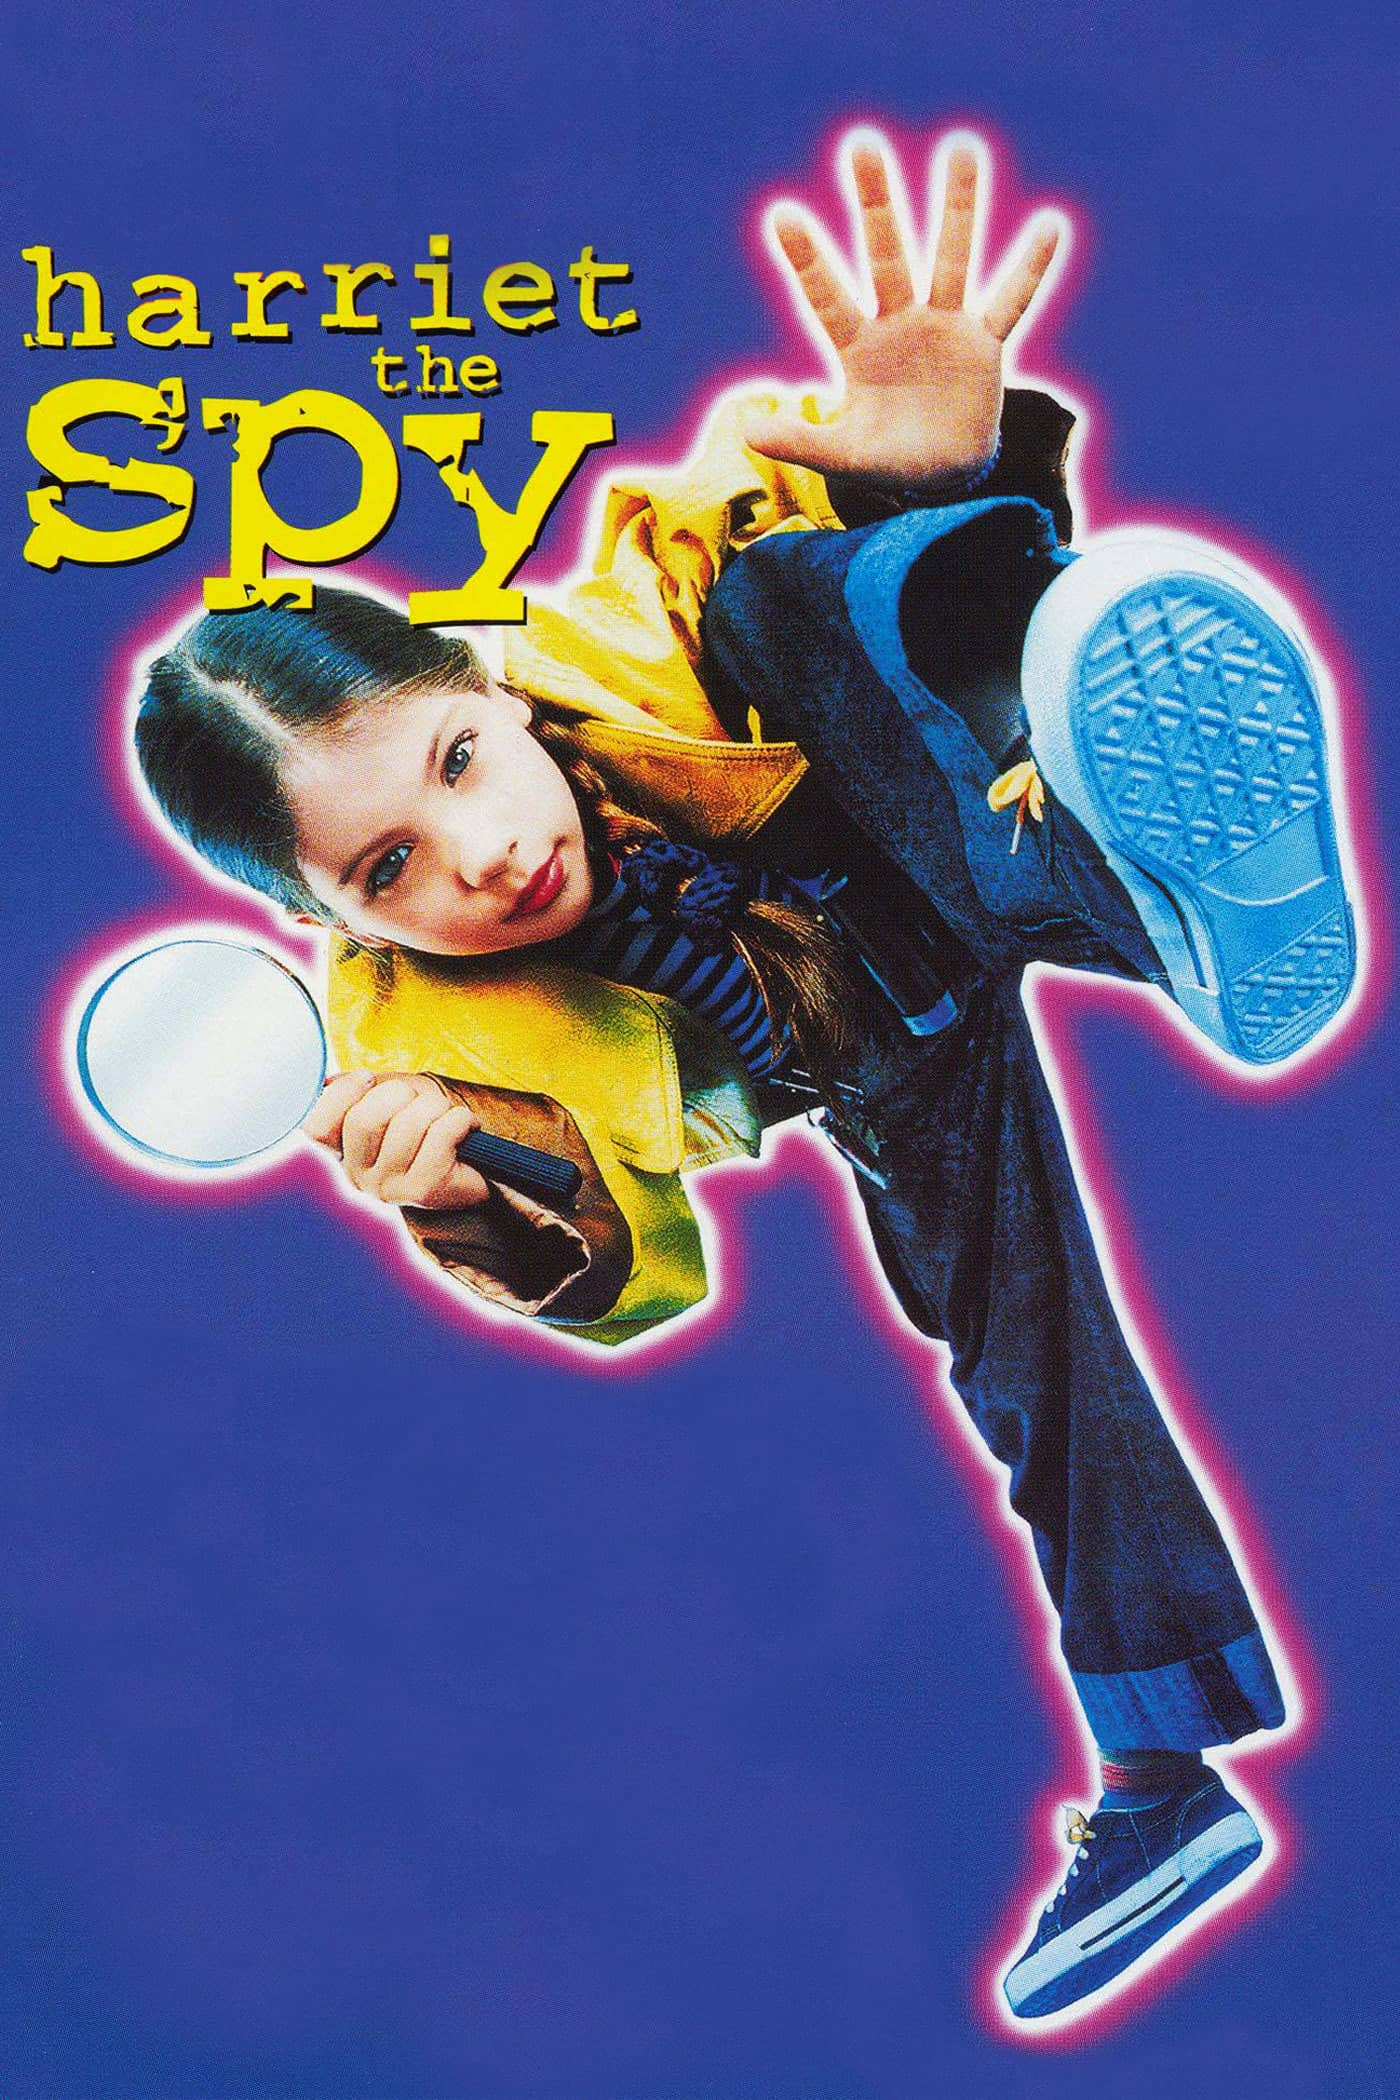 Harriet the Spy, 1996